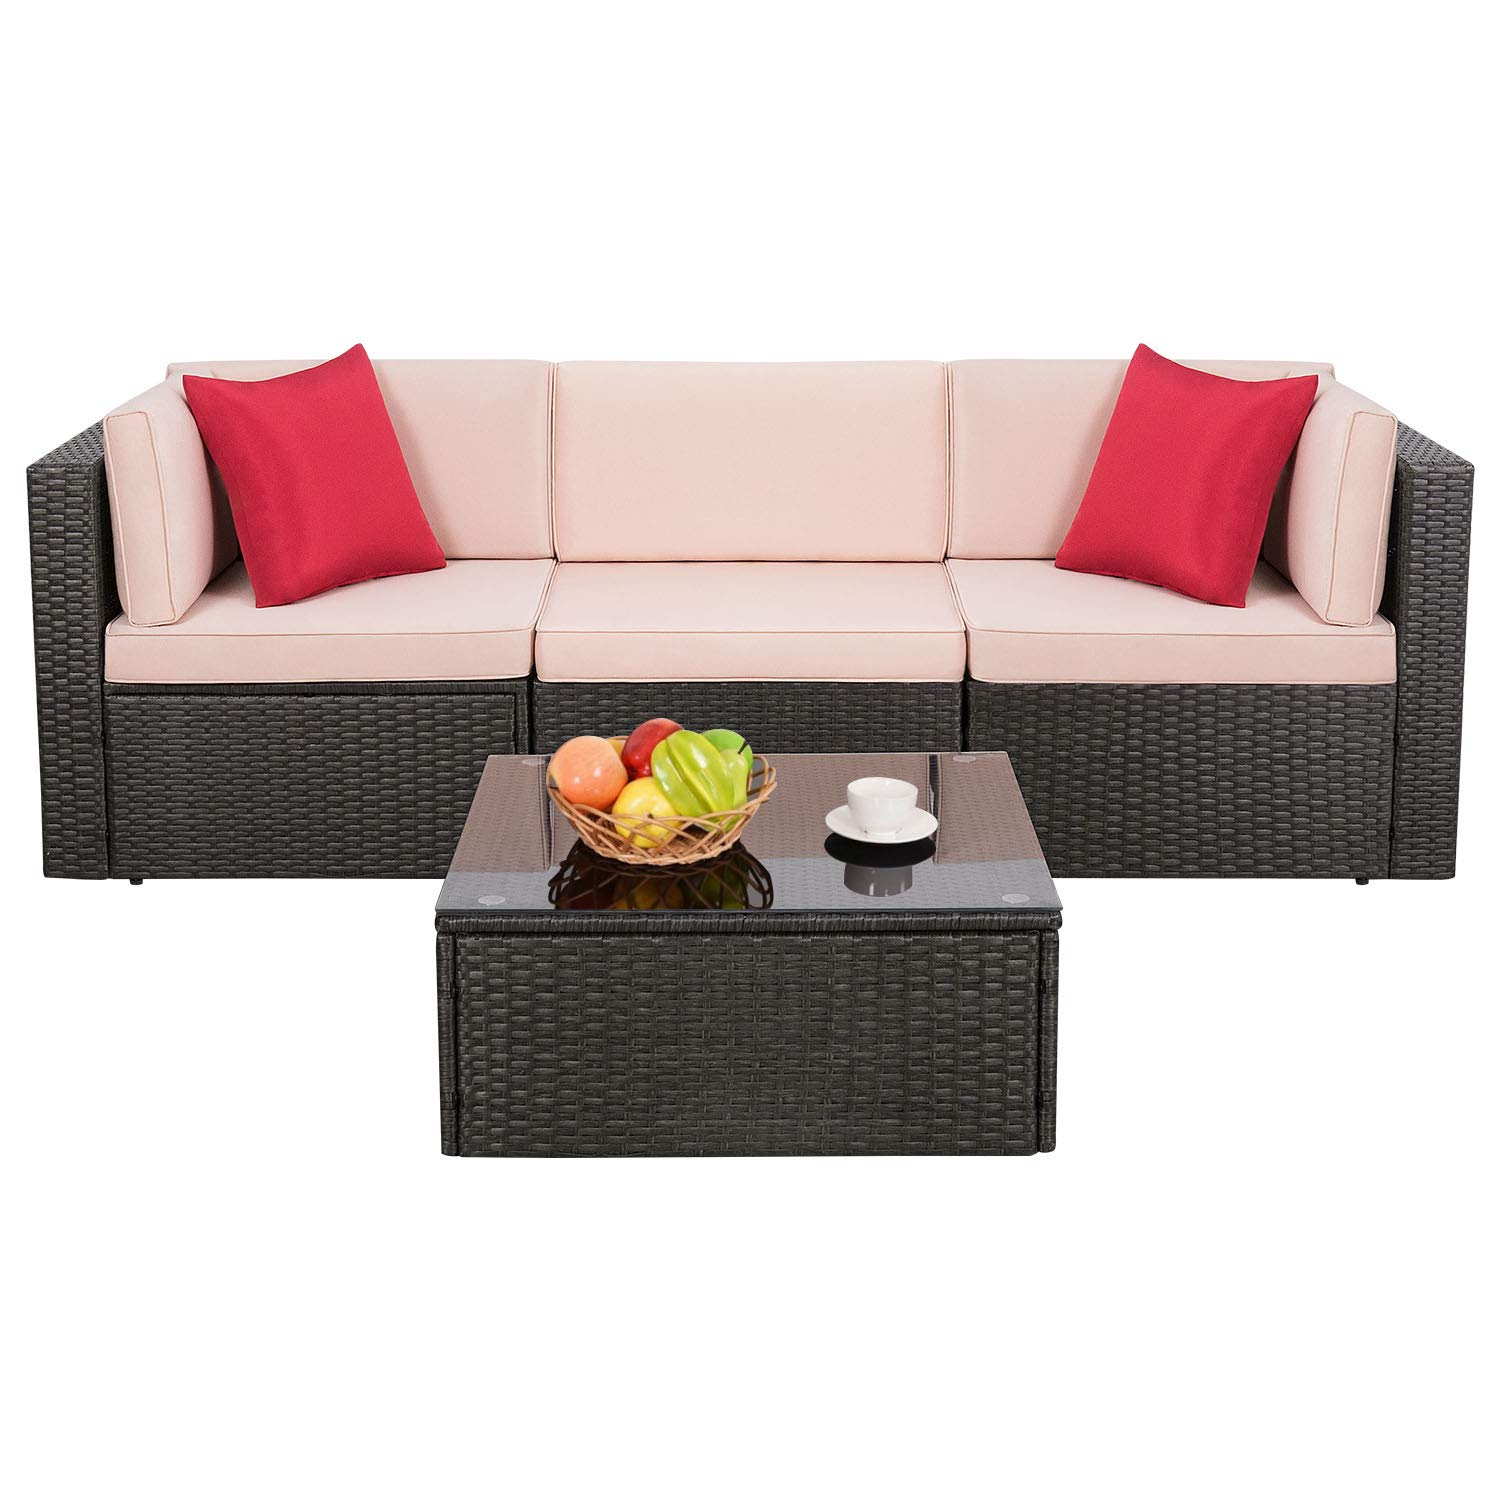 Image modern wicker patio furniture Cushions Homall Outdoor Furniture Sectional Safa Modern Wicker Sets With Cushion All Weather Rattan Conversation Set With Modern Glass Coffee Table For Patio Velago Patio Furniture Amazoncom Homall Outdoor Furniture Sectional Safa Modern Wicker